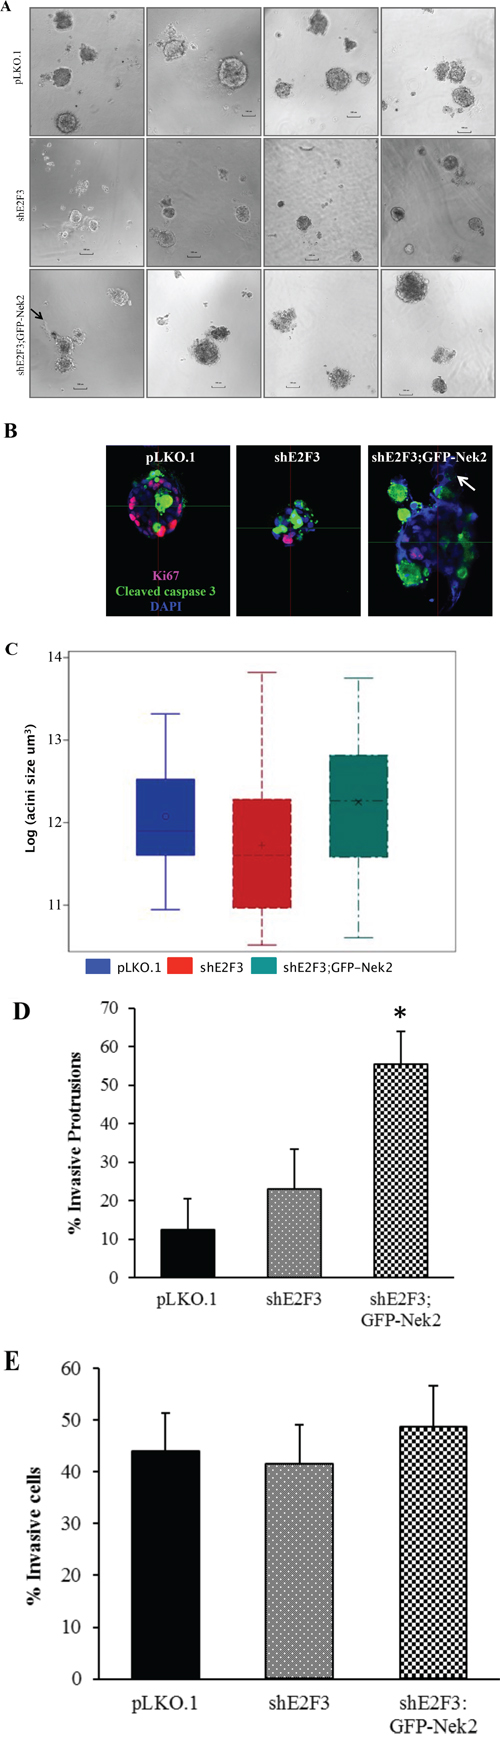 Nek2 overexpression in shE2F3 cells enhances formation of invasive protrusions.